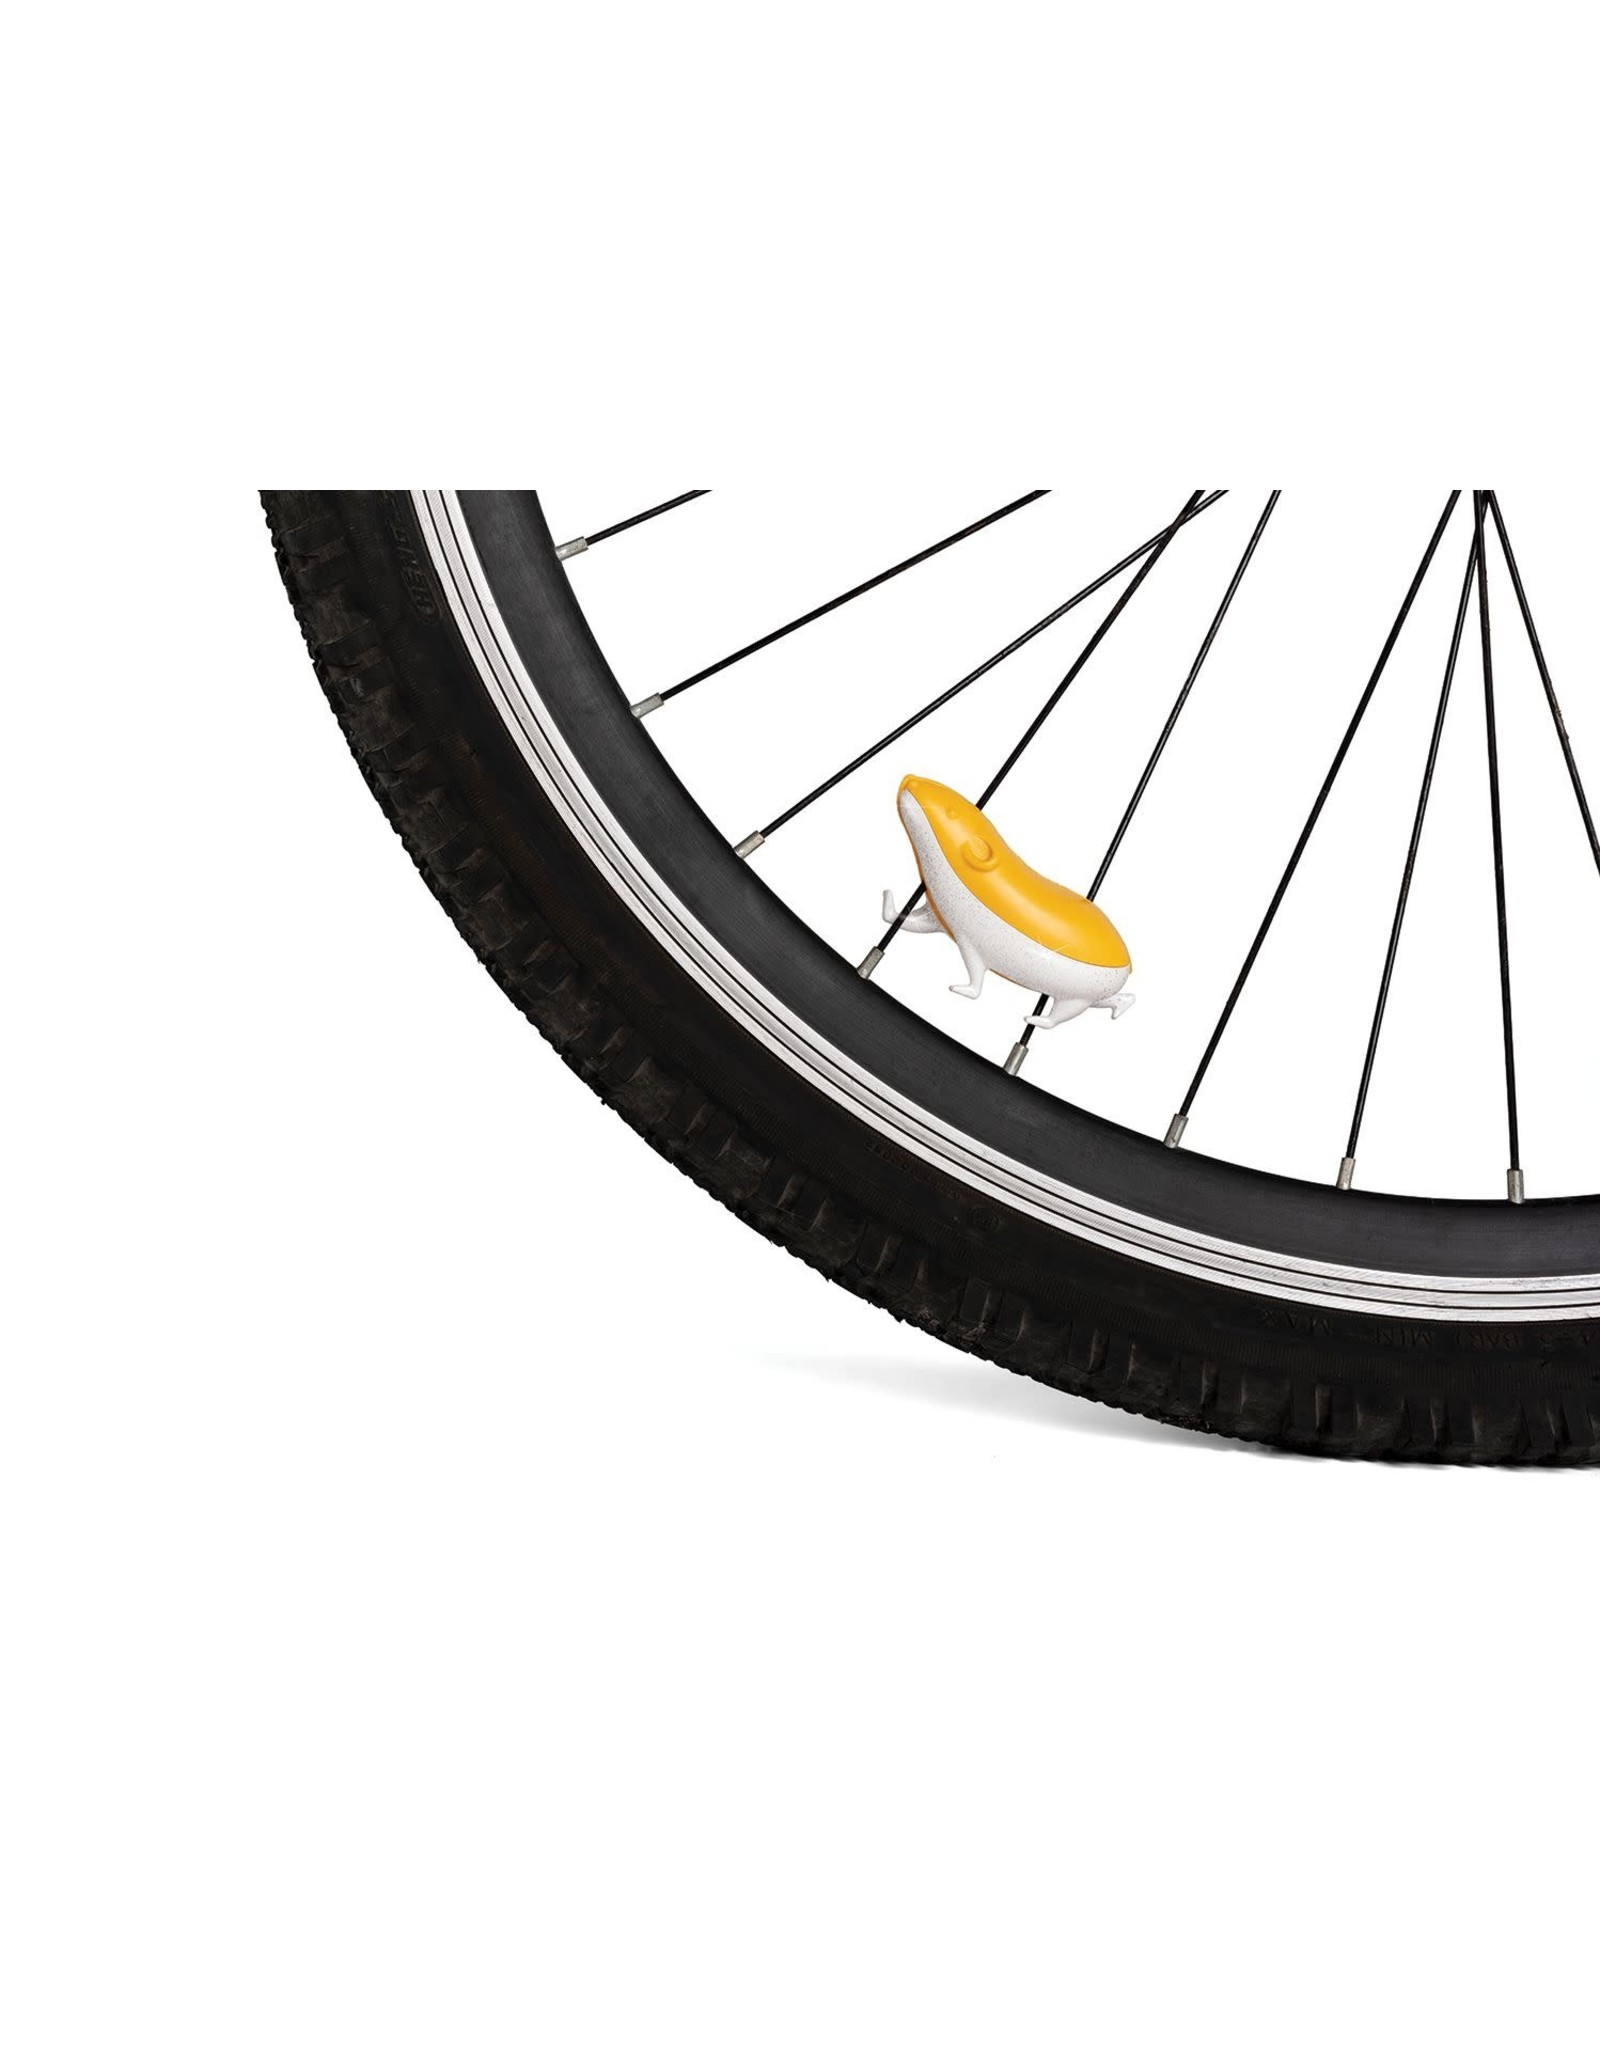 Ototo bicycle accessory for spokes